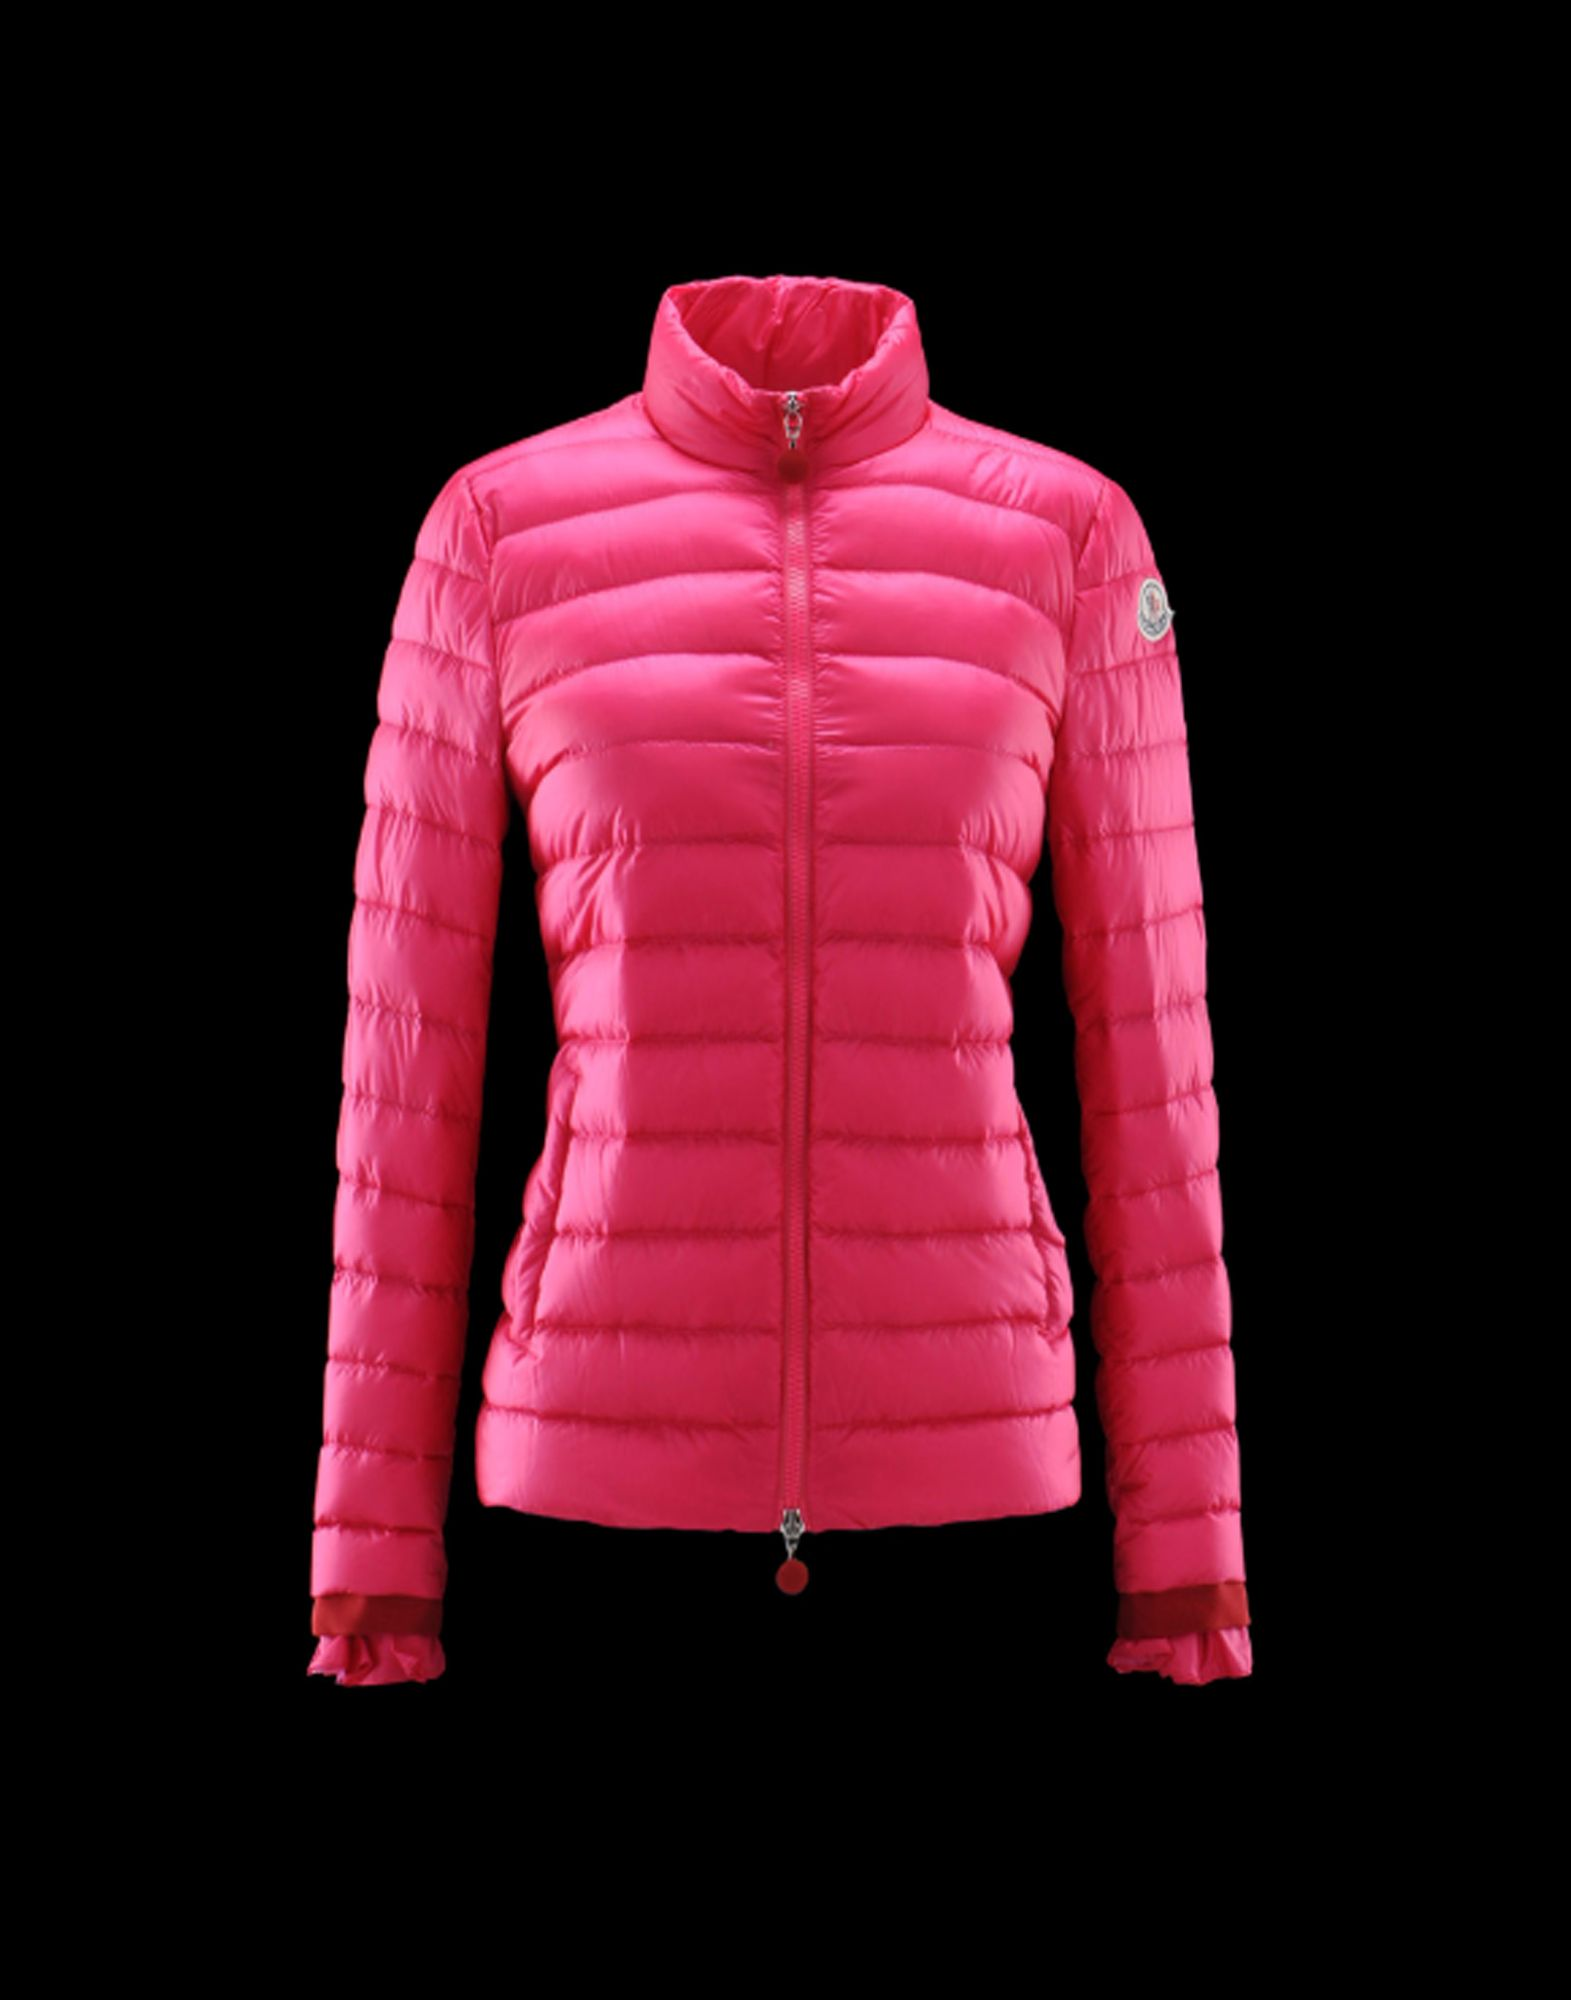 moncler delivery